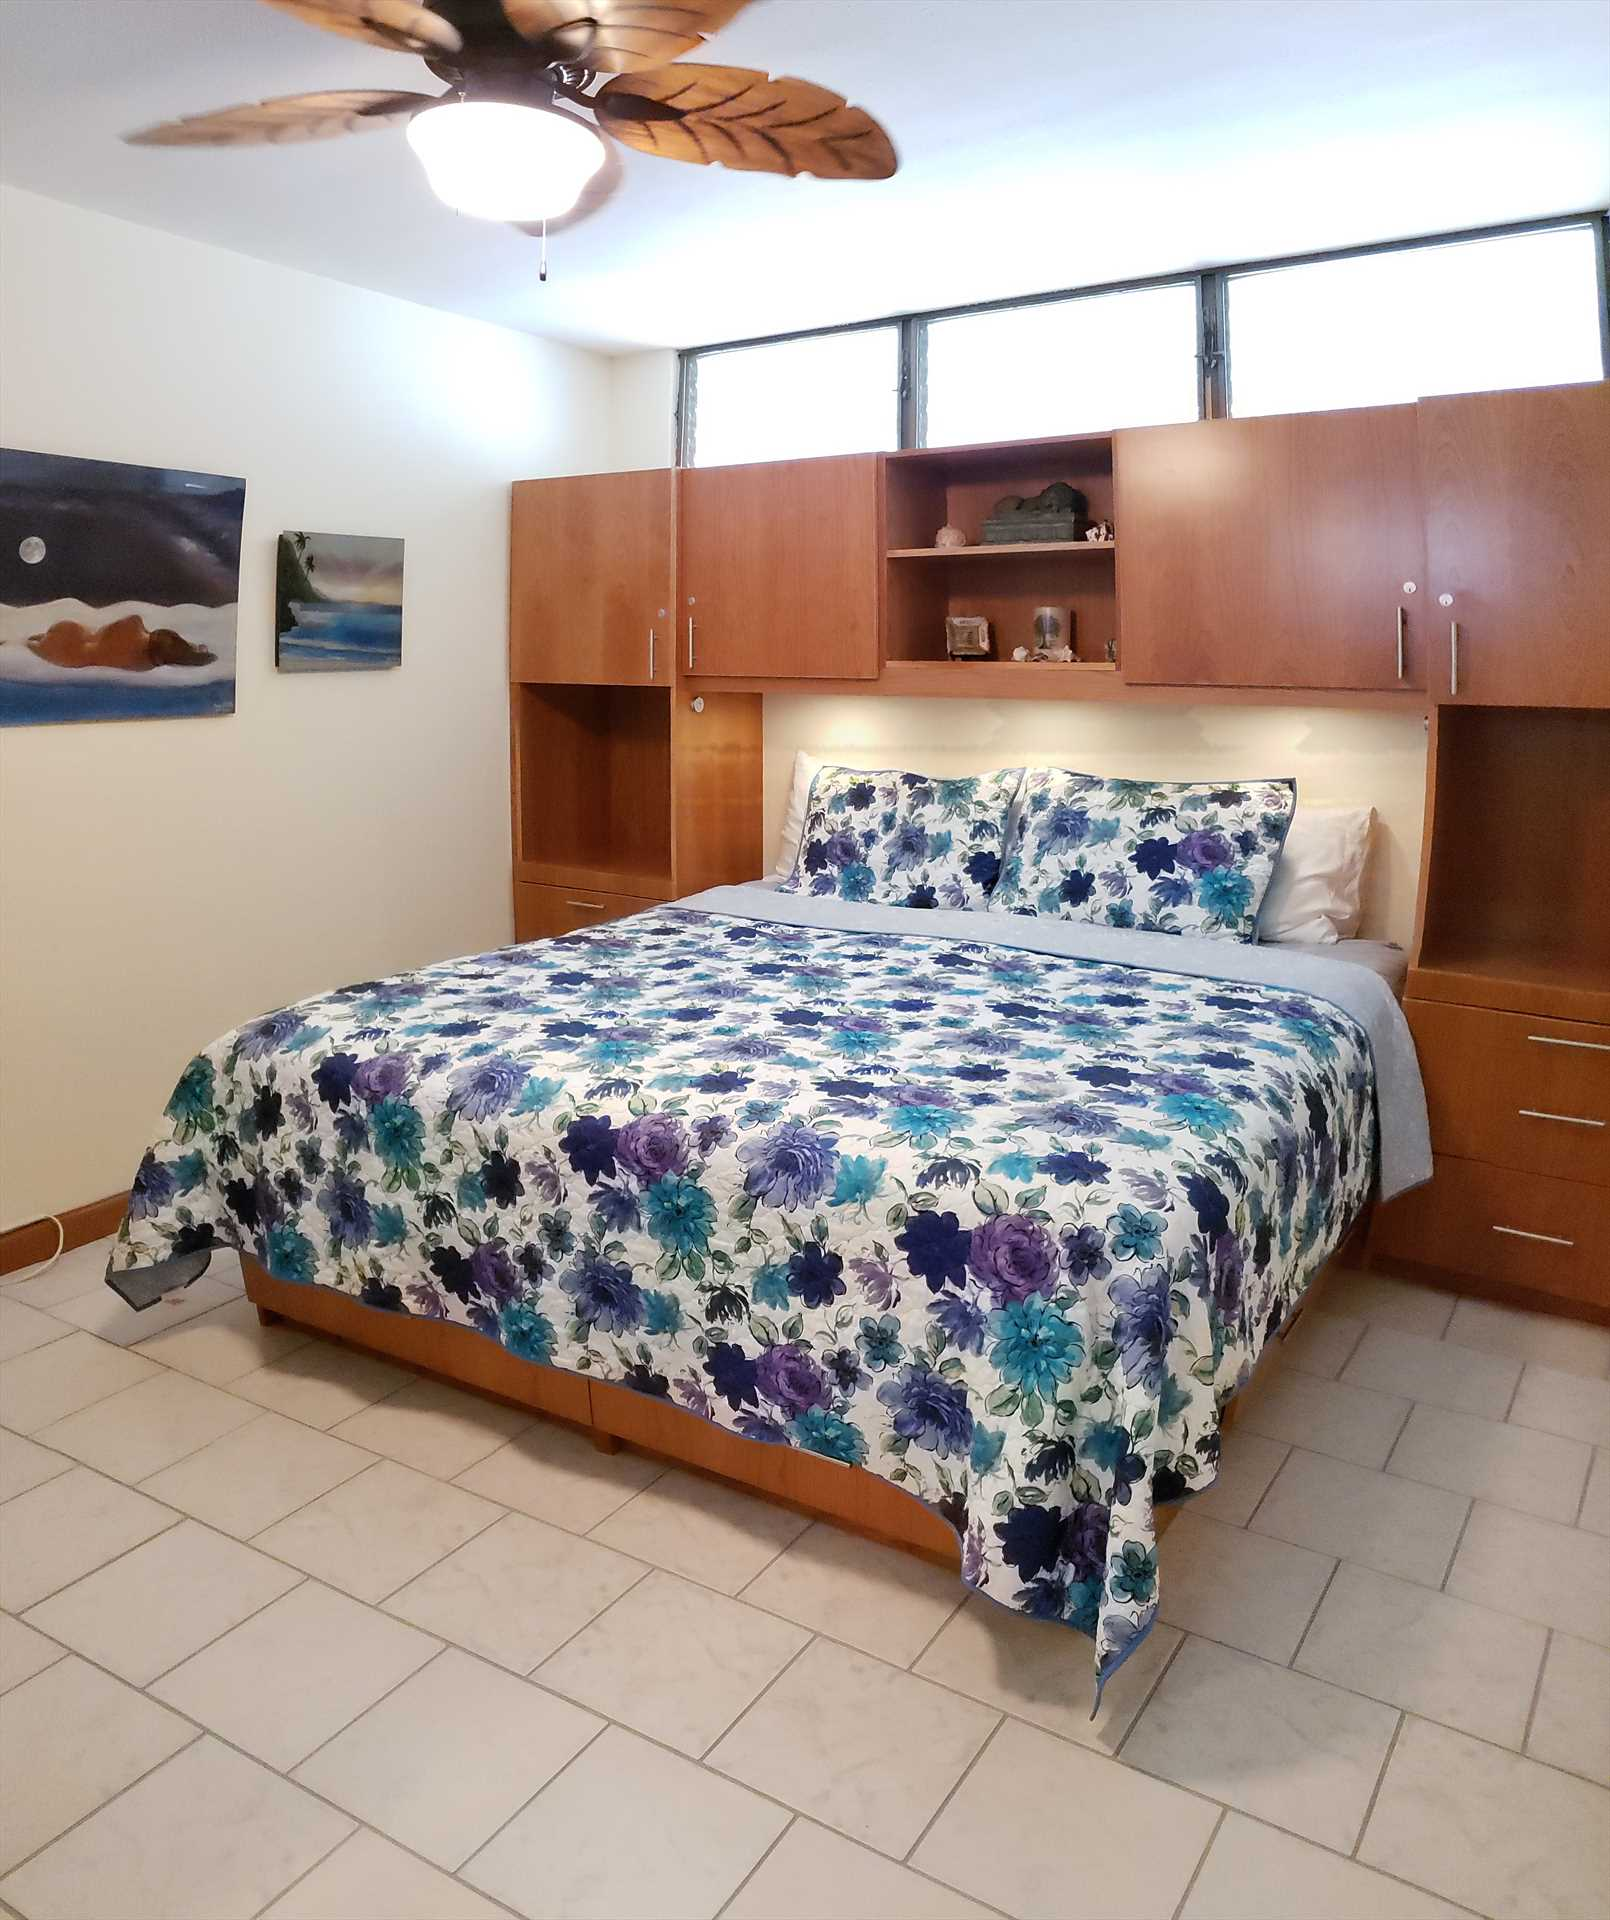 Master bedroom new built in furniture year 2020